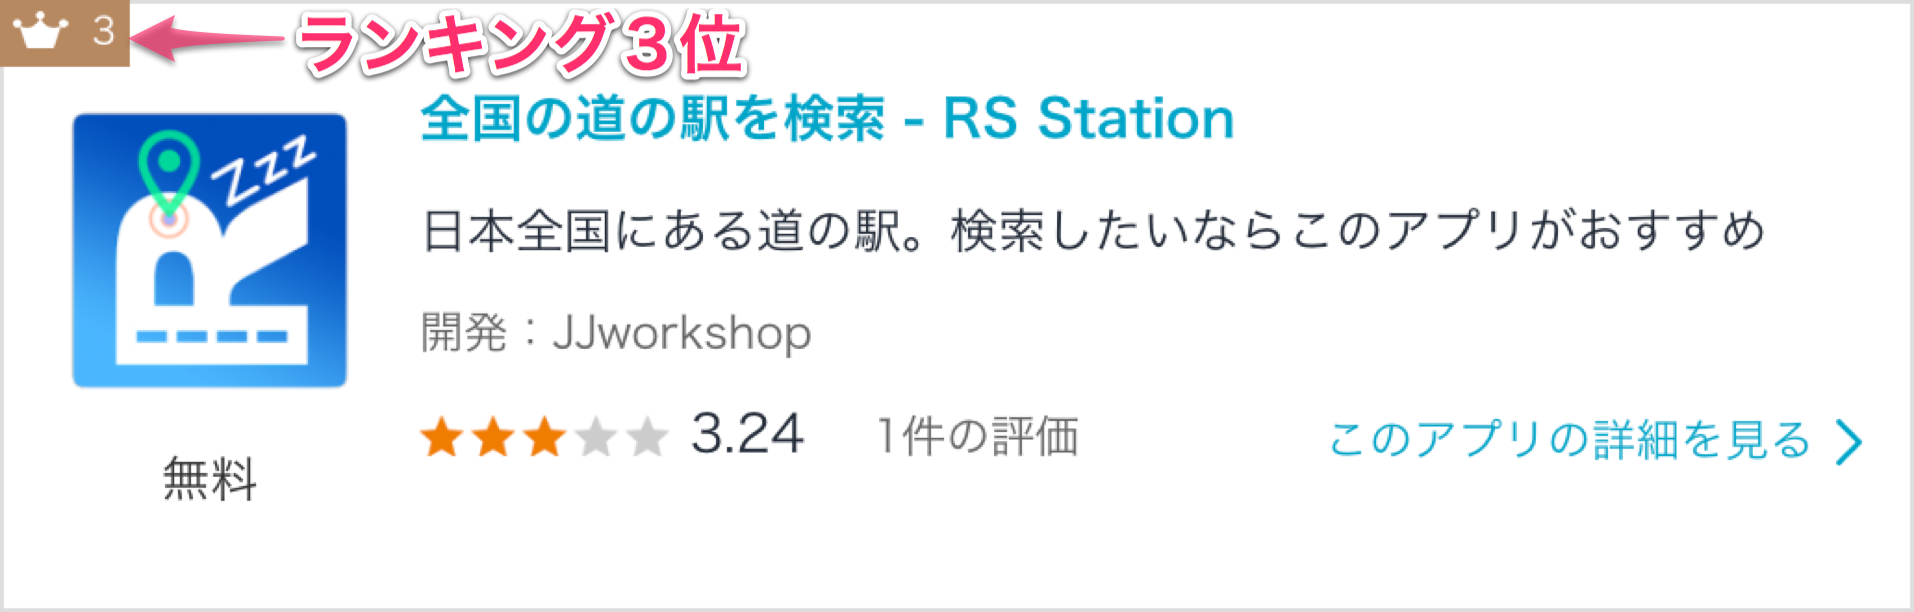 Appliv_rss_20180402.png